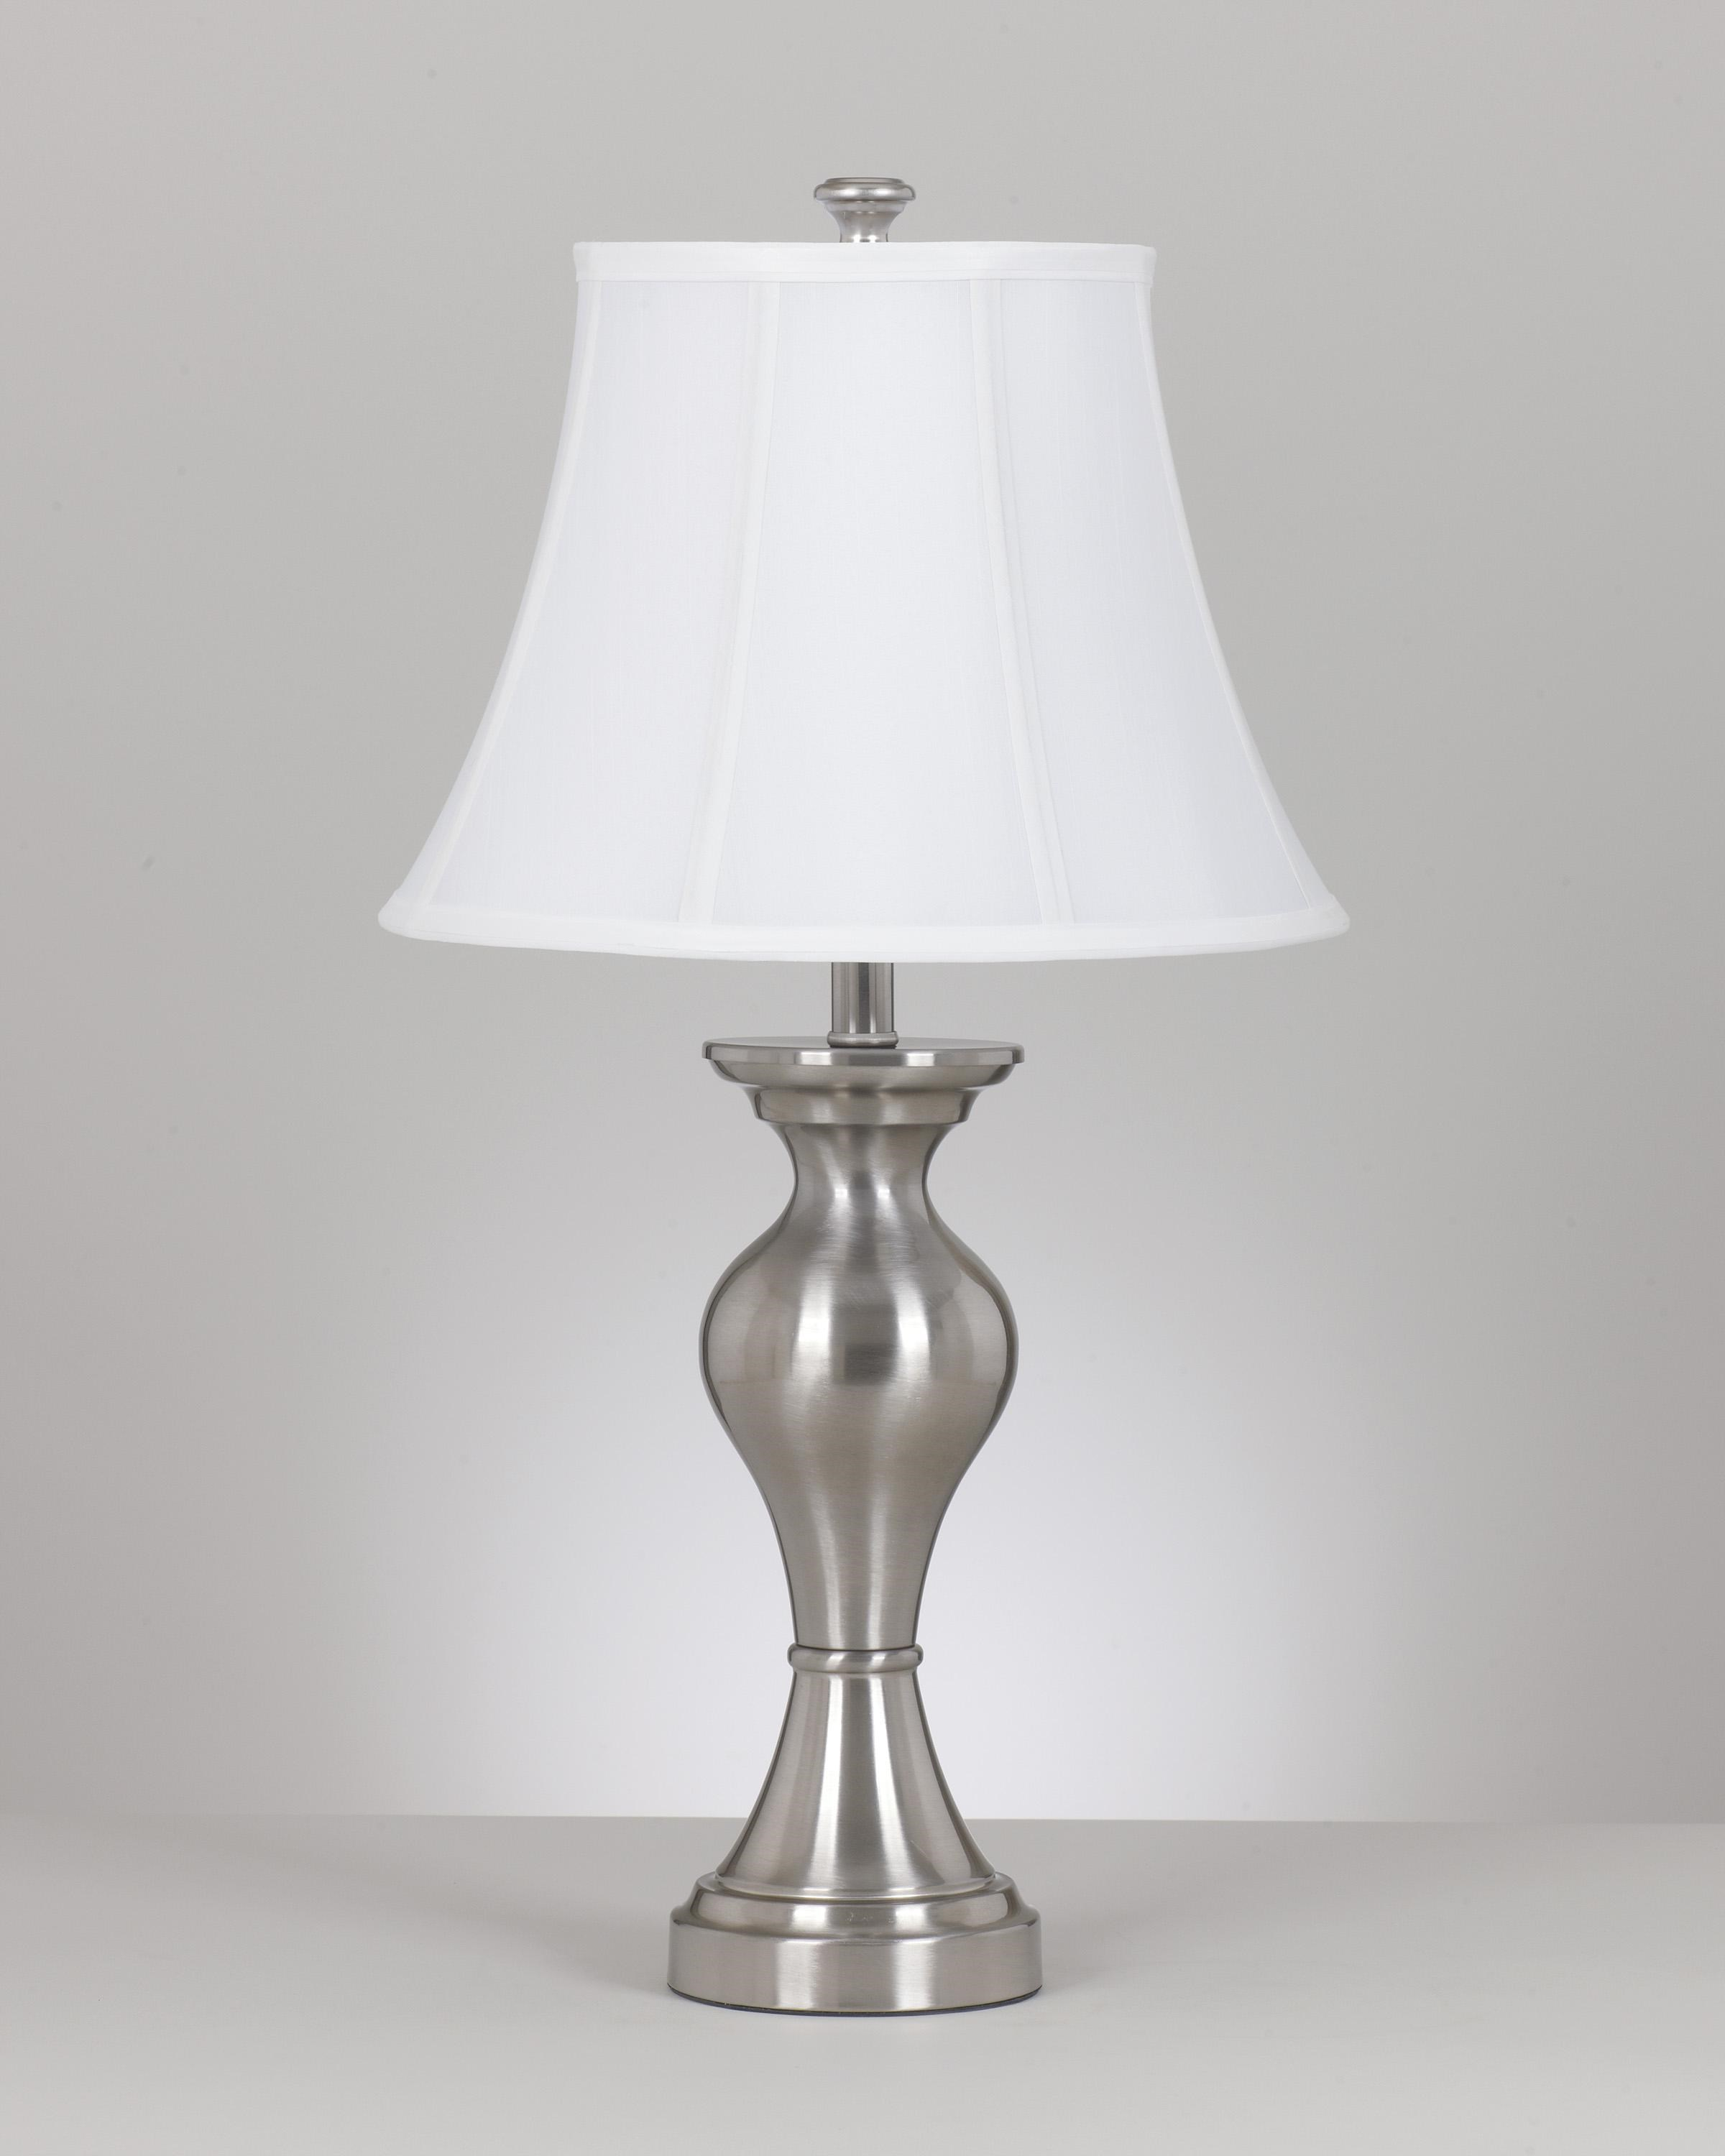 Vintage Table Lamps Lamps Vintage Style Set Of 2 Rishona Metal Table Lamps By Signature Design By Ashley At Miller Home